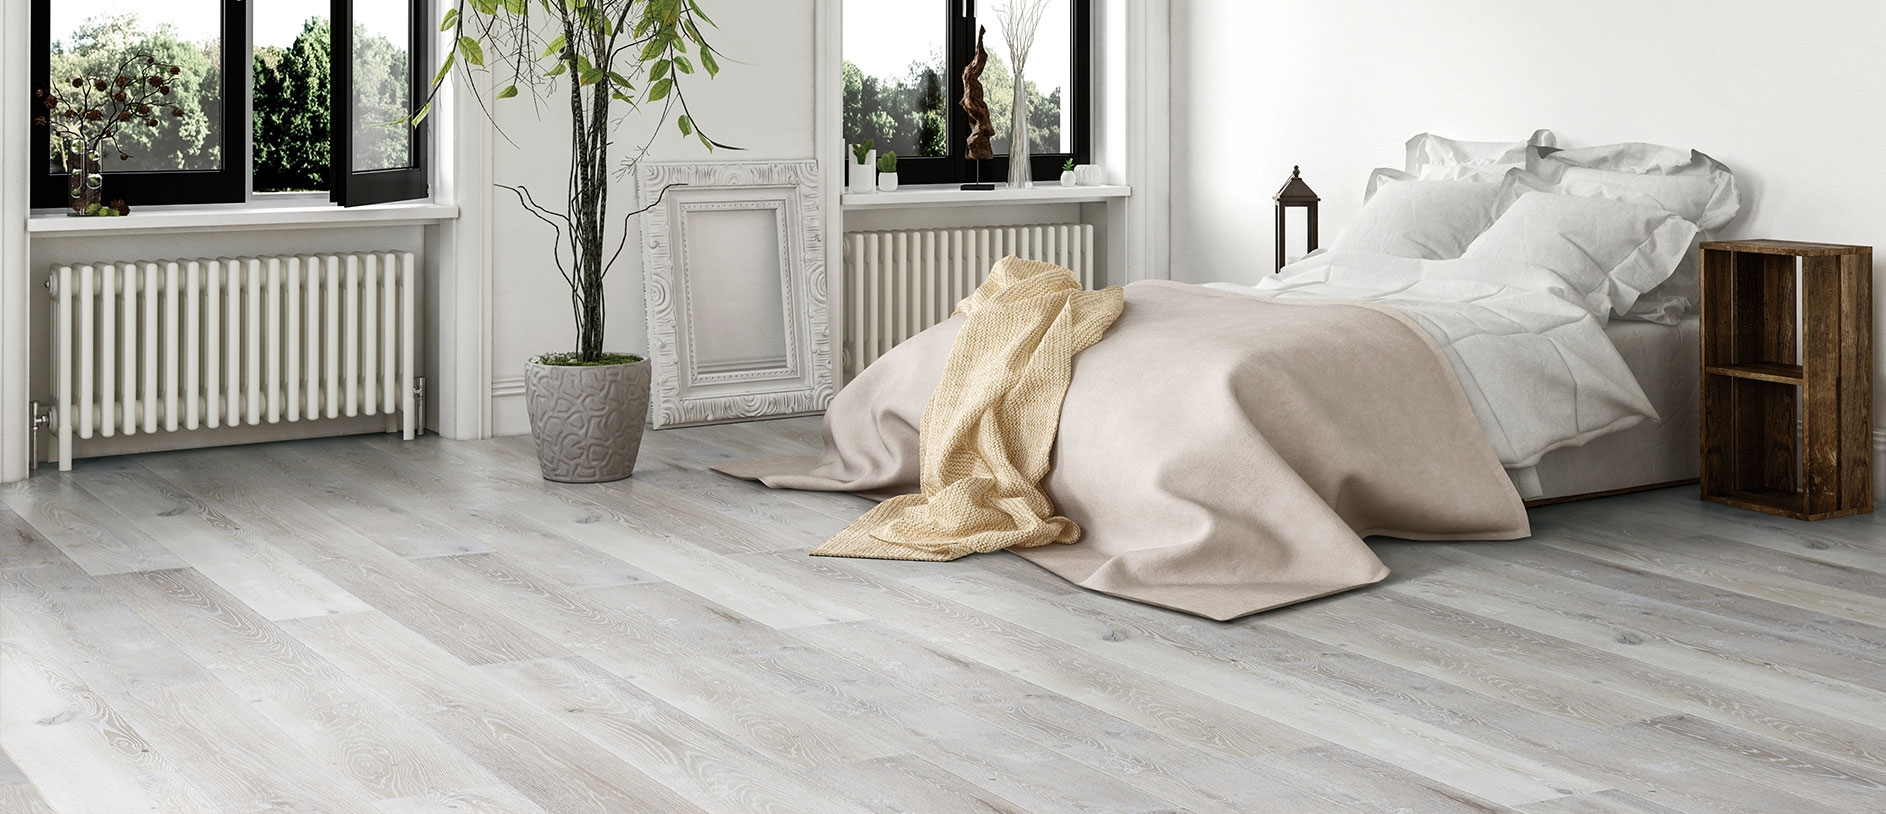 Luxury WPC flooring